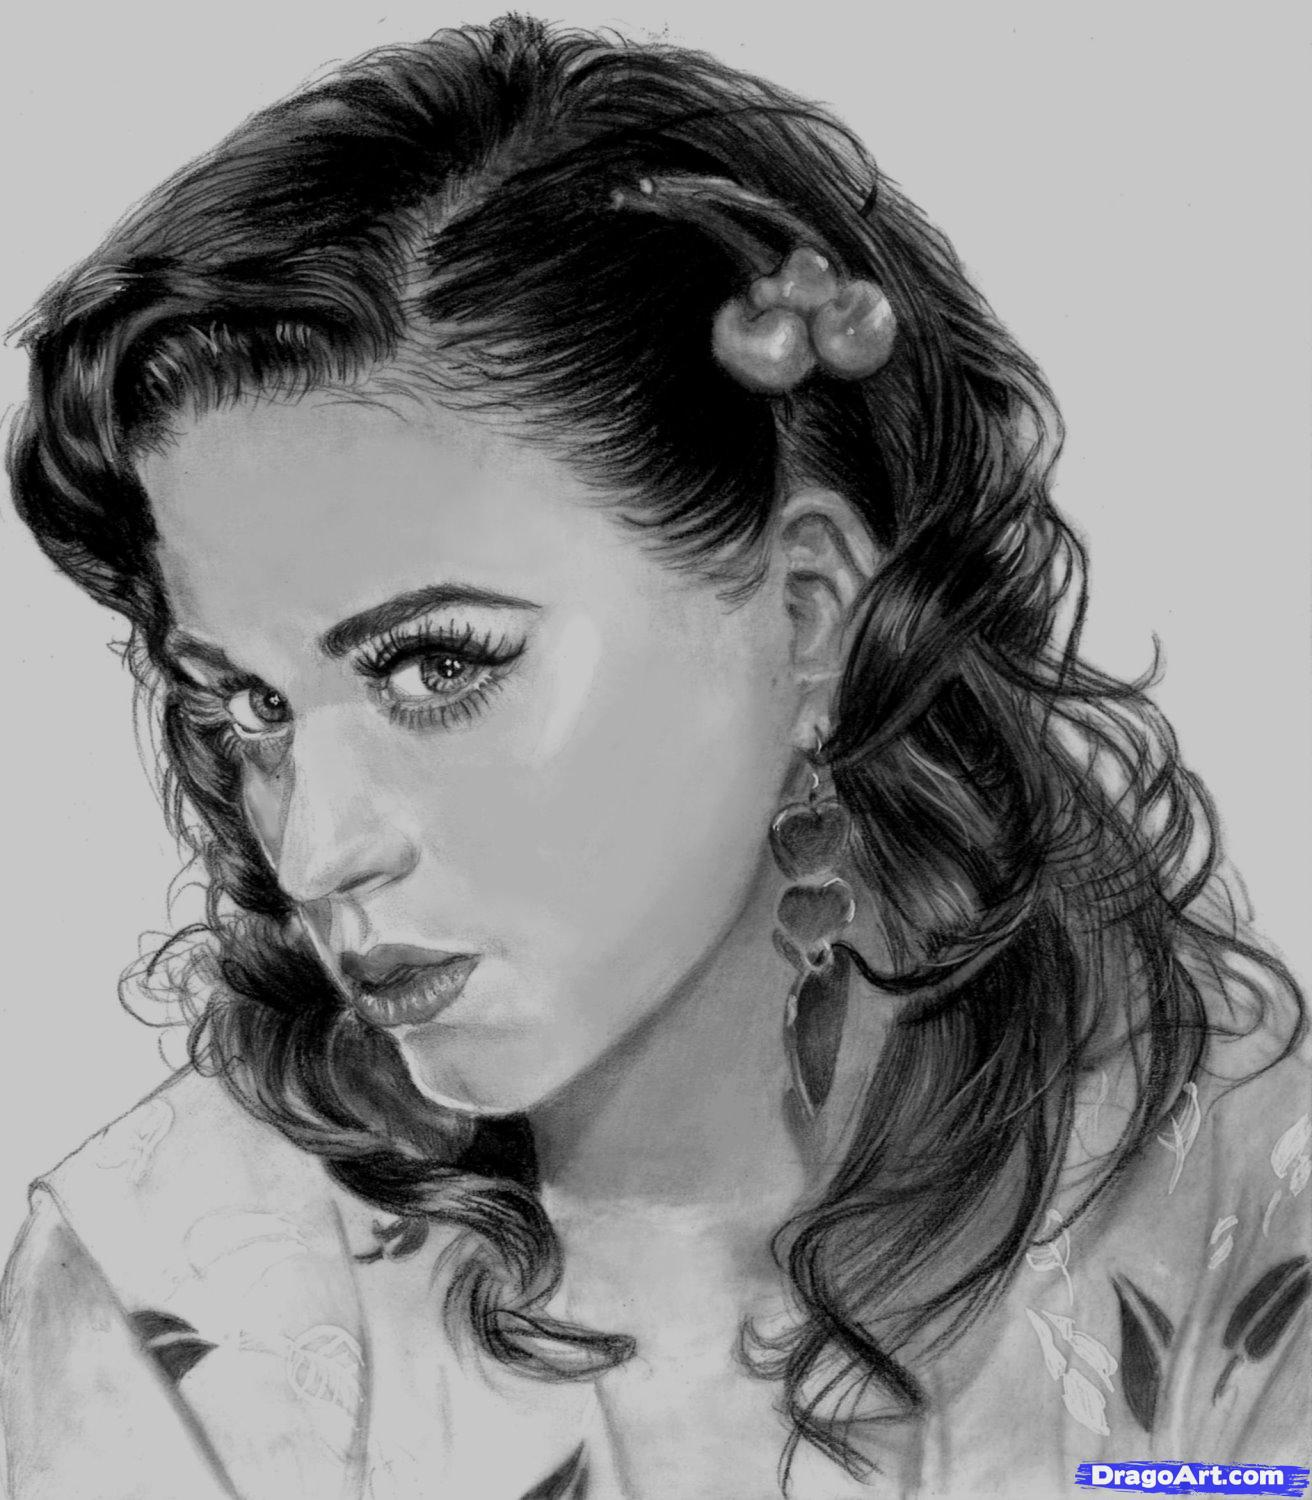 Katy Perry: Katy Perry Drawing